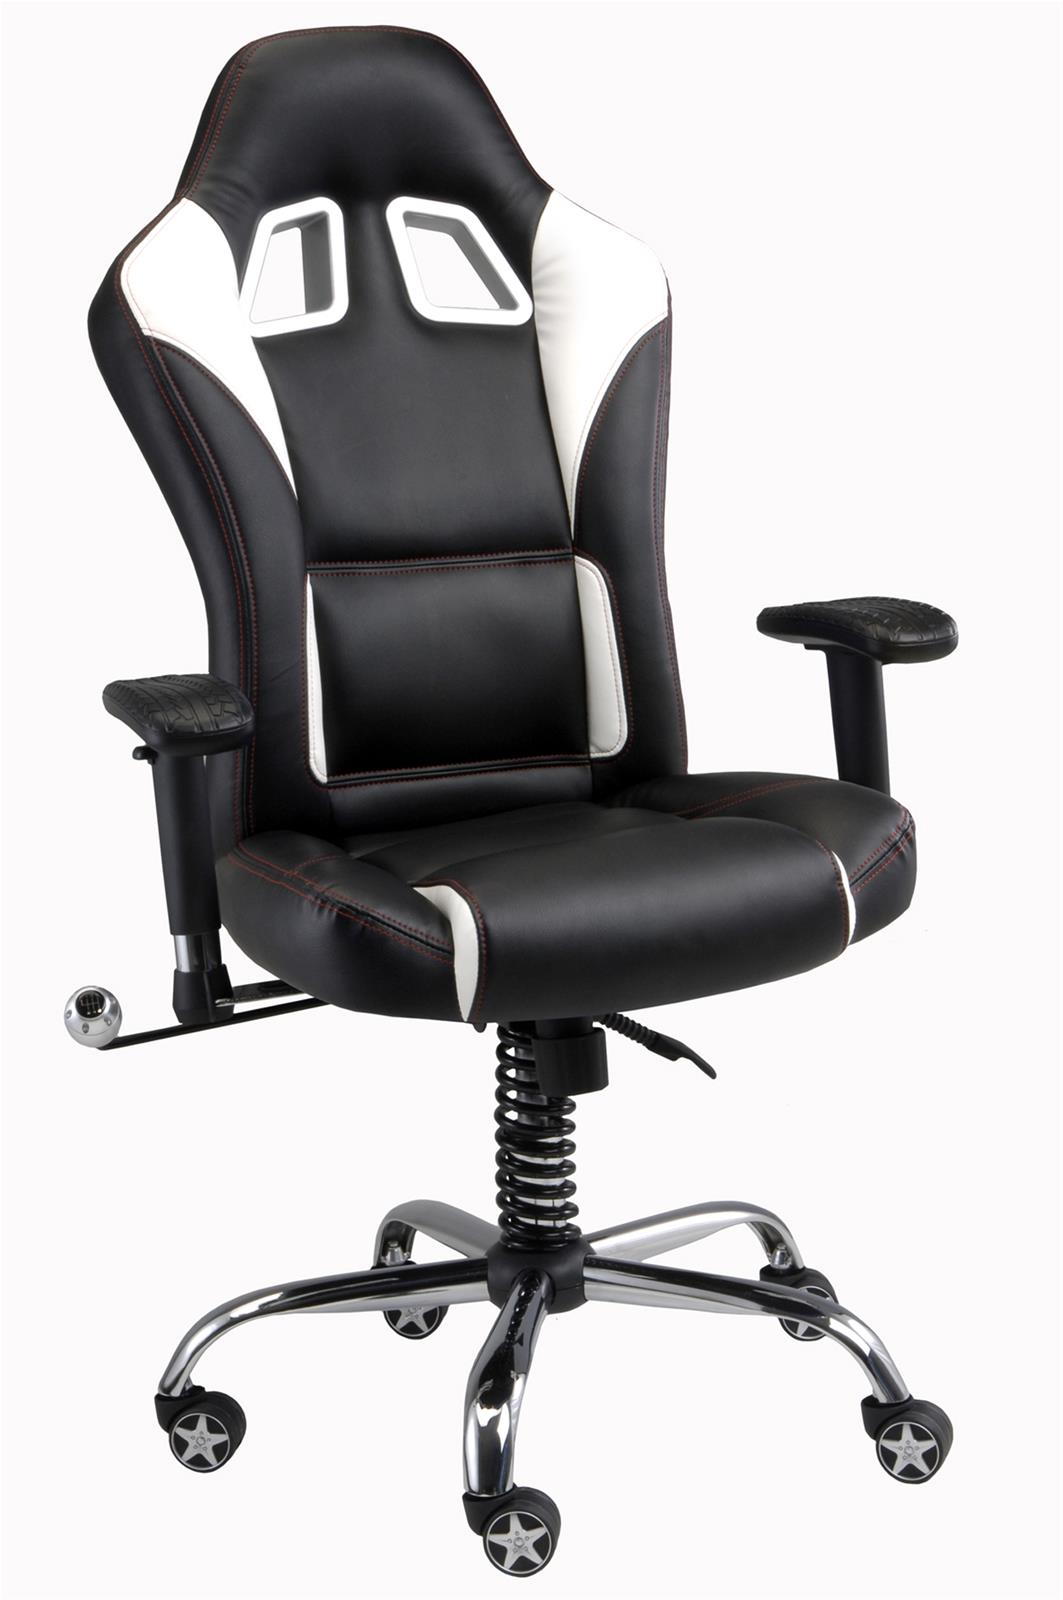 x racer chair eames aluminum management replica pitstop se office more colors available free